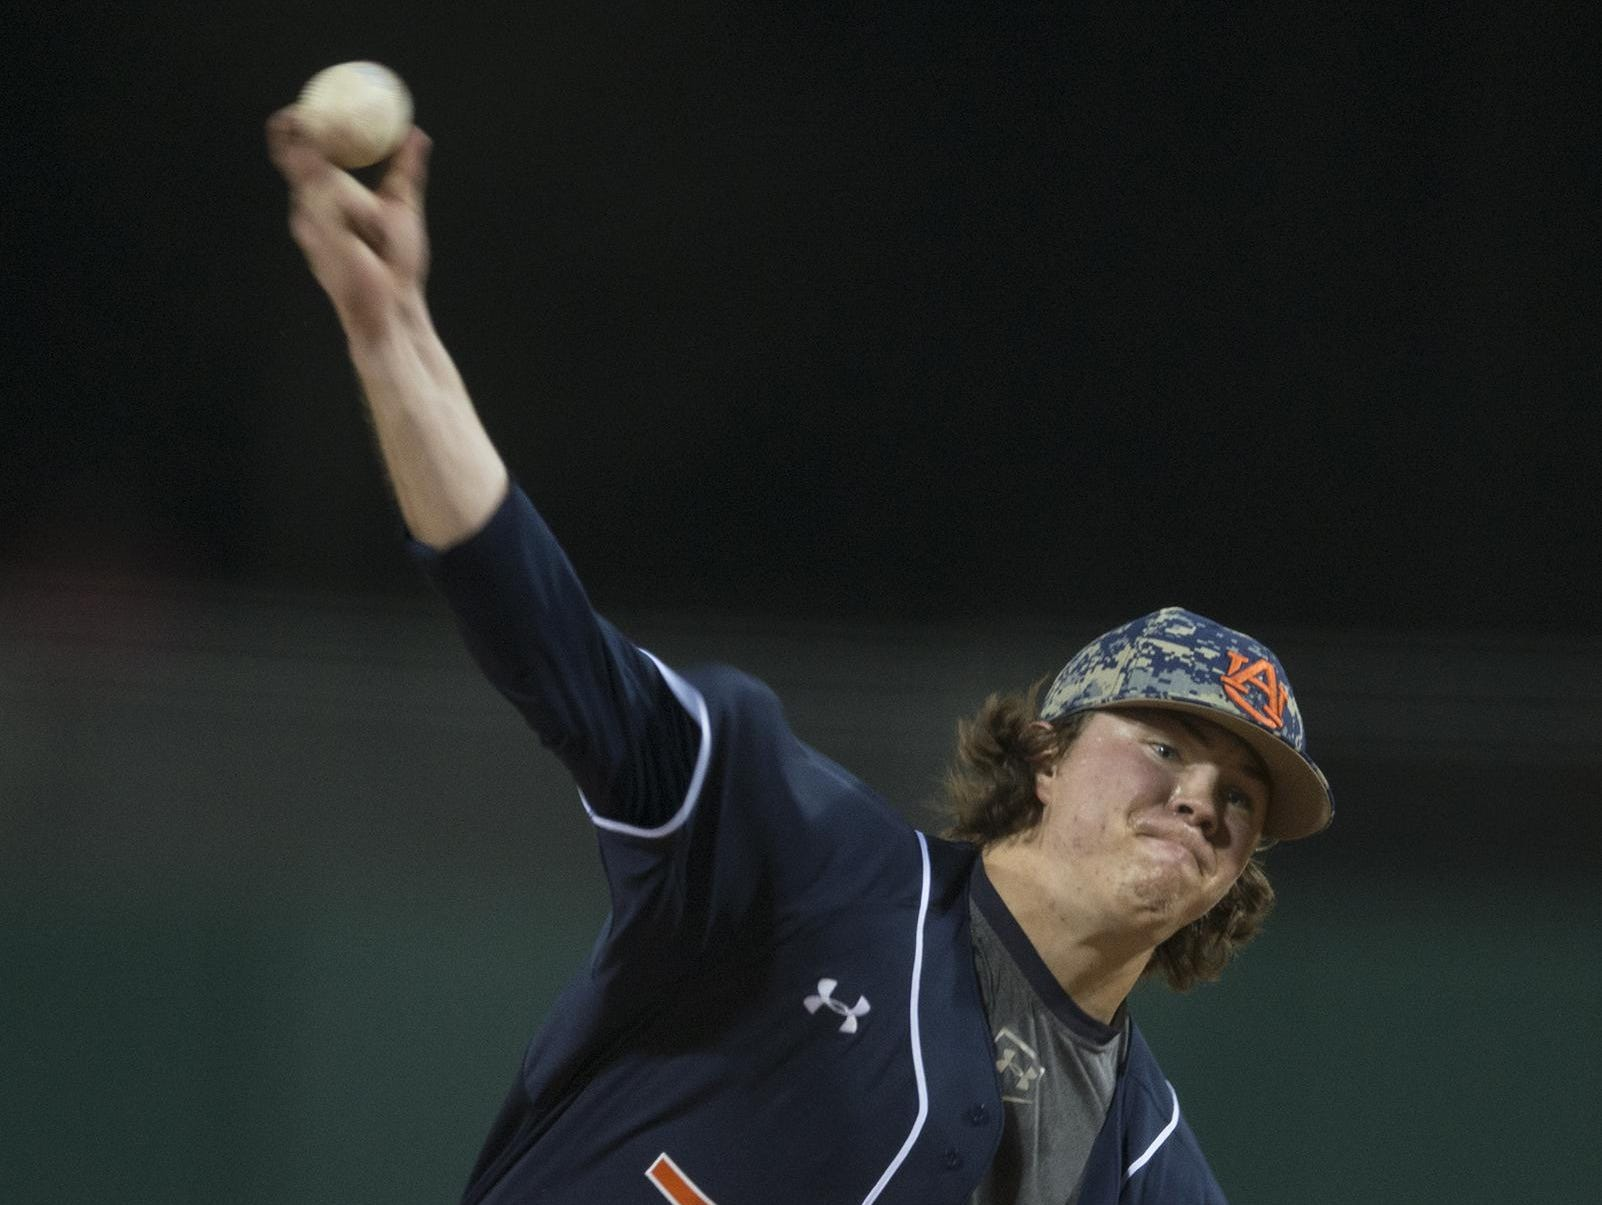 Auburn ace Keegan Thompson's status for the SEC Tournament is in question as he recovers from an elbow injury.